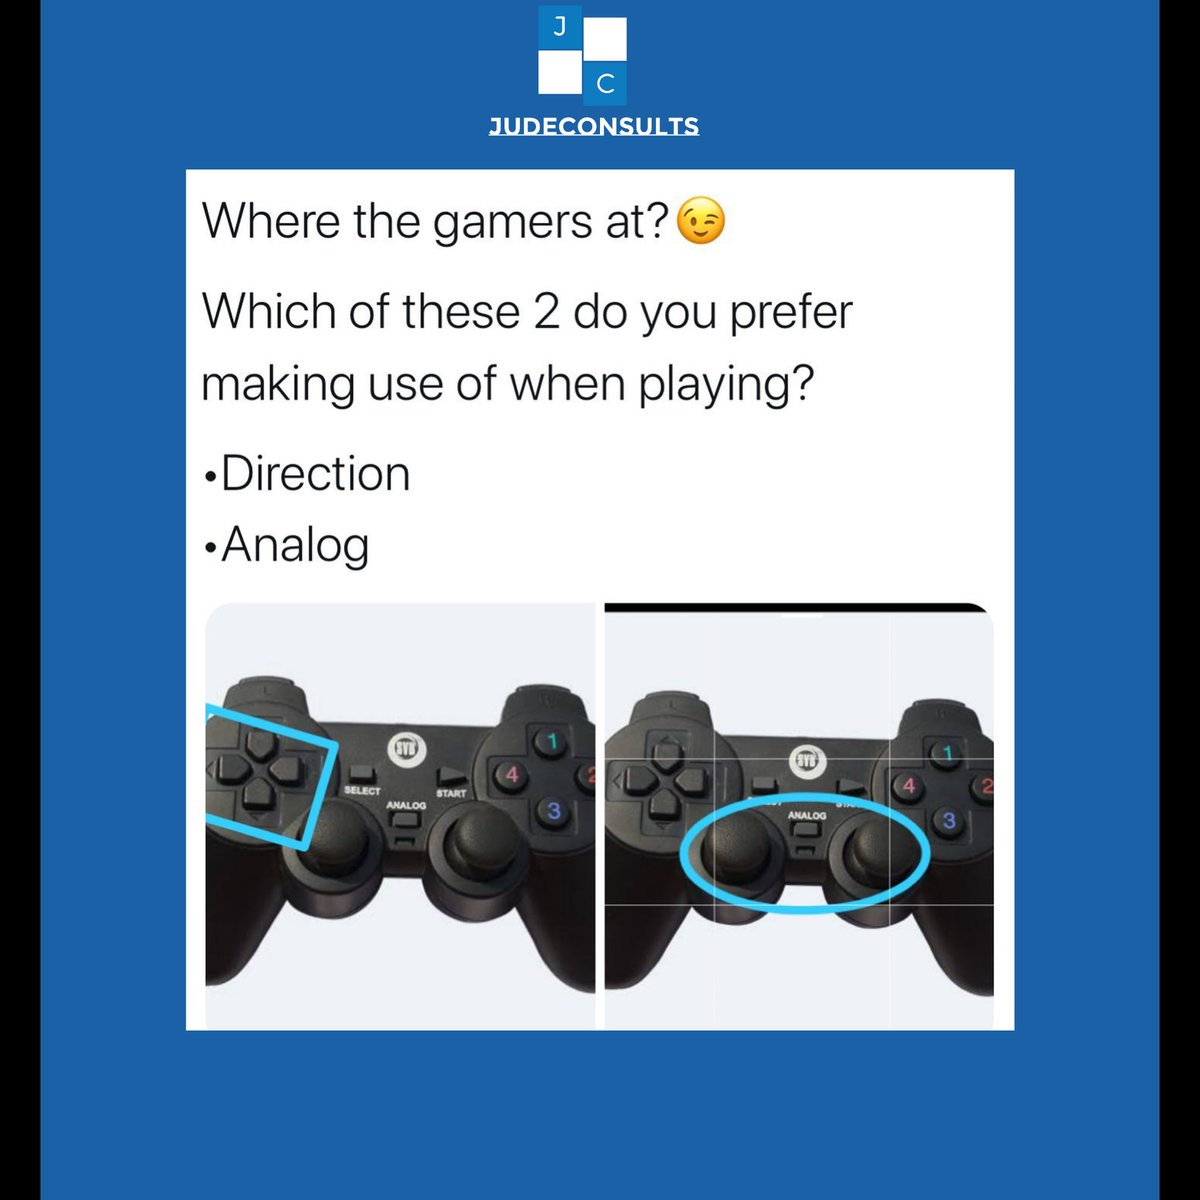 As a gamer which did/do you feel was better and more convenient to use?  A) Direction B) Analog  Lets comment below#gamers #playstationgames pic.twitter.com/7Cuguh23vo